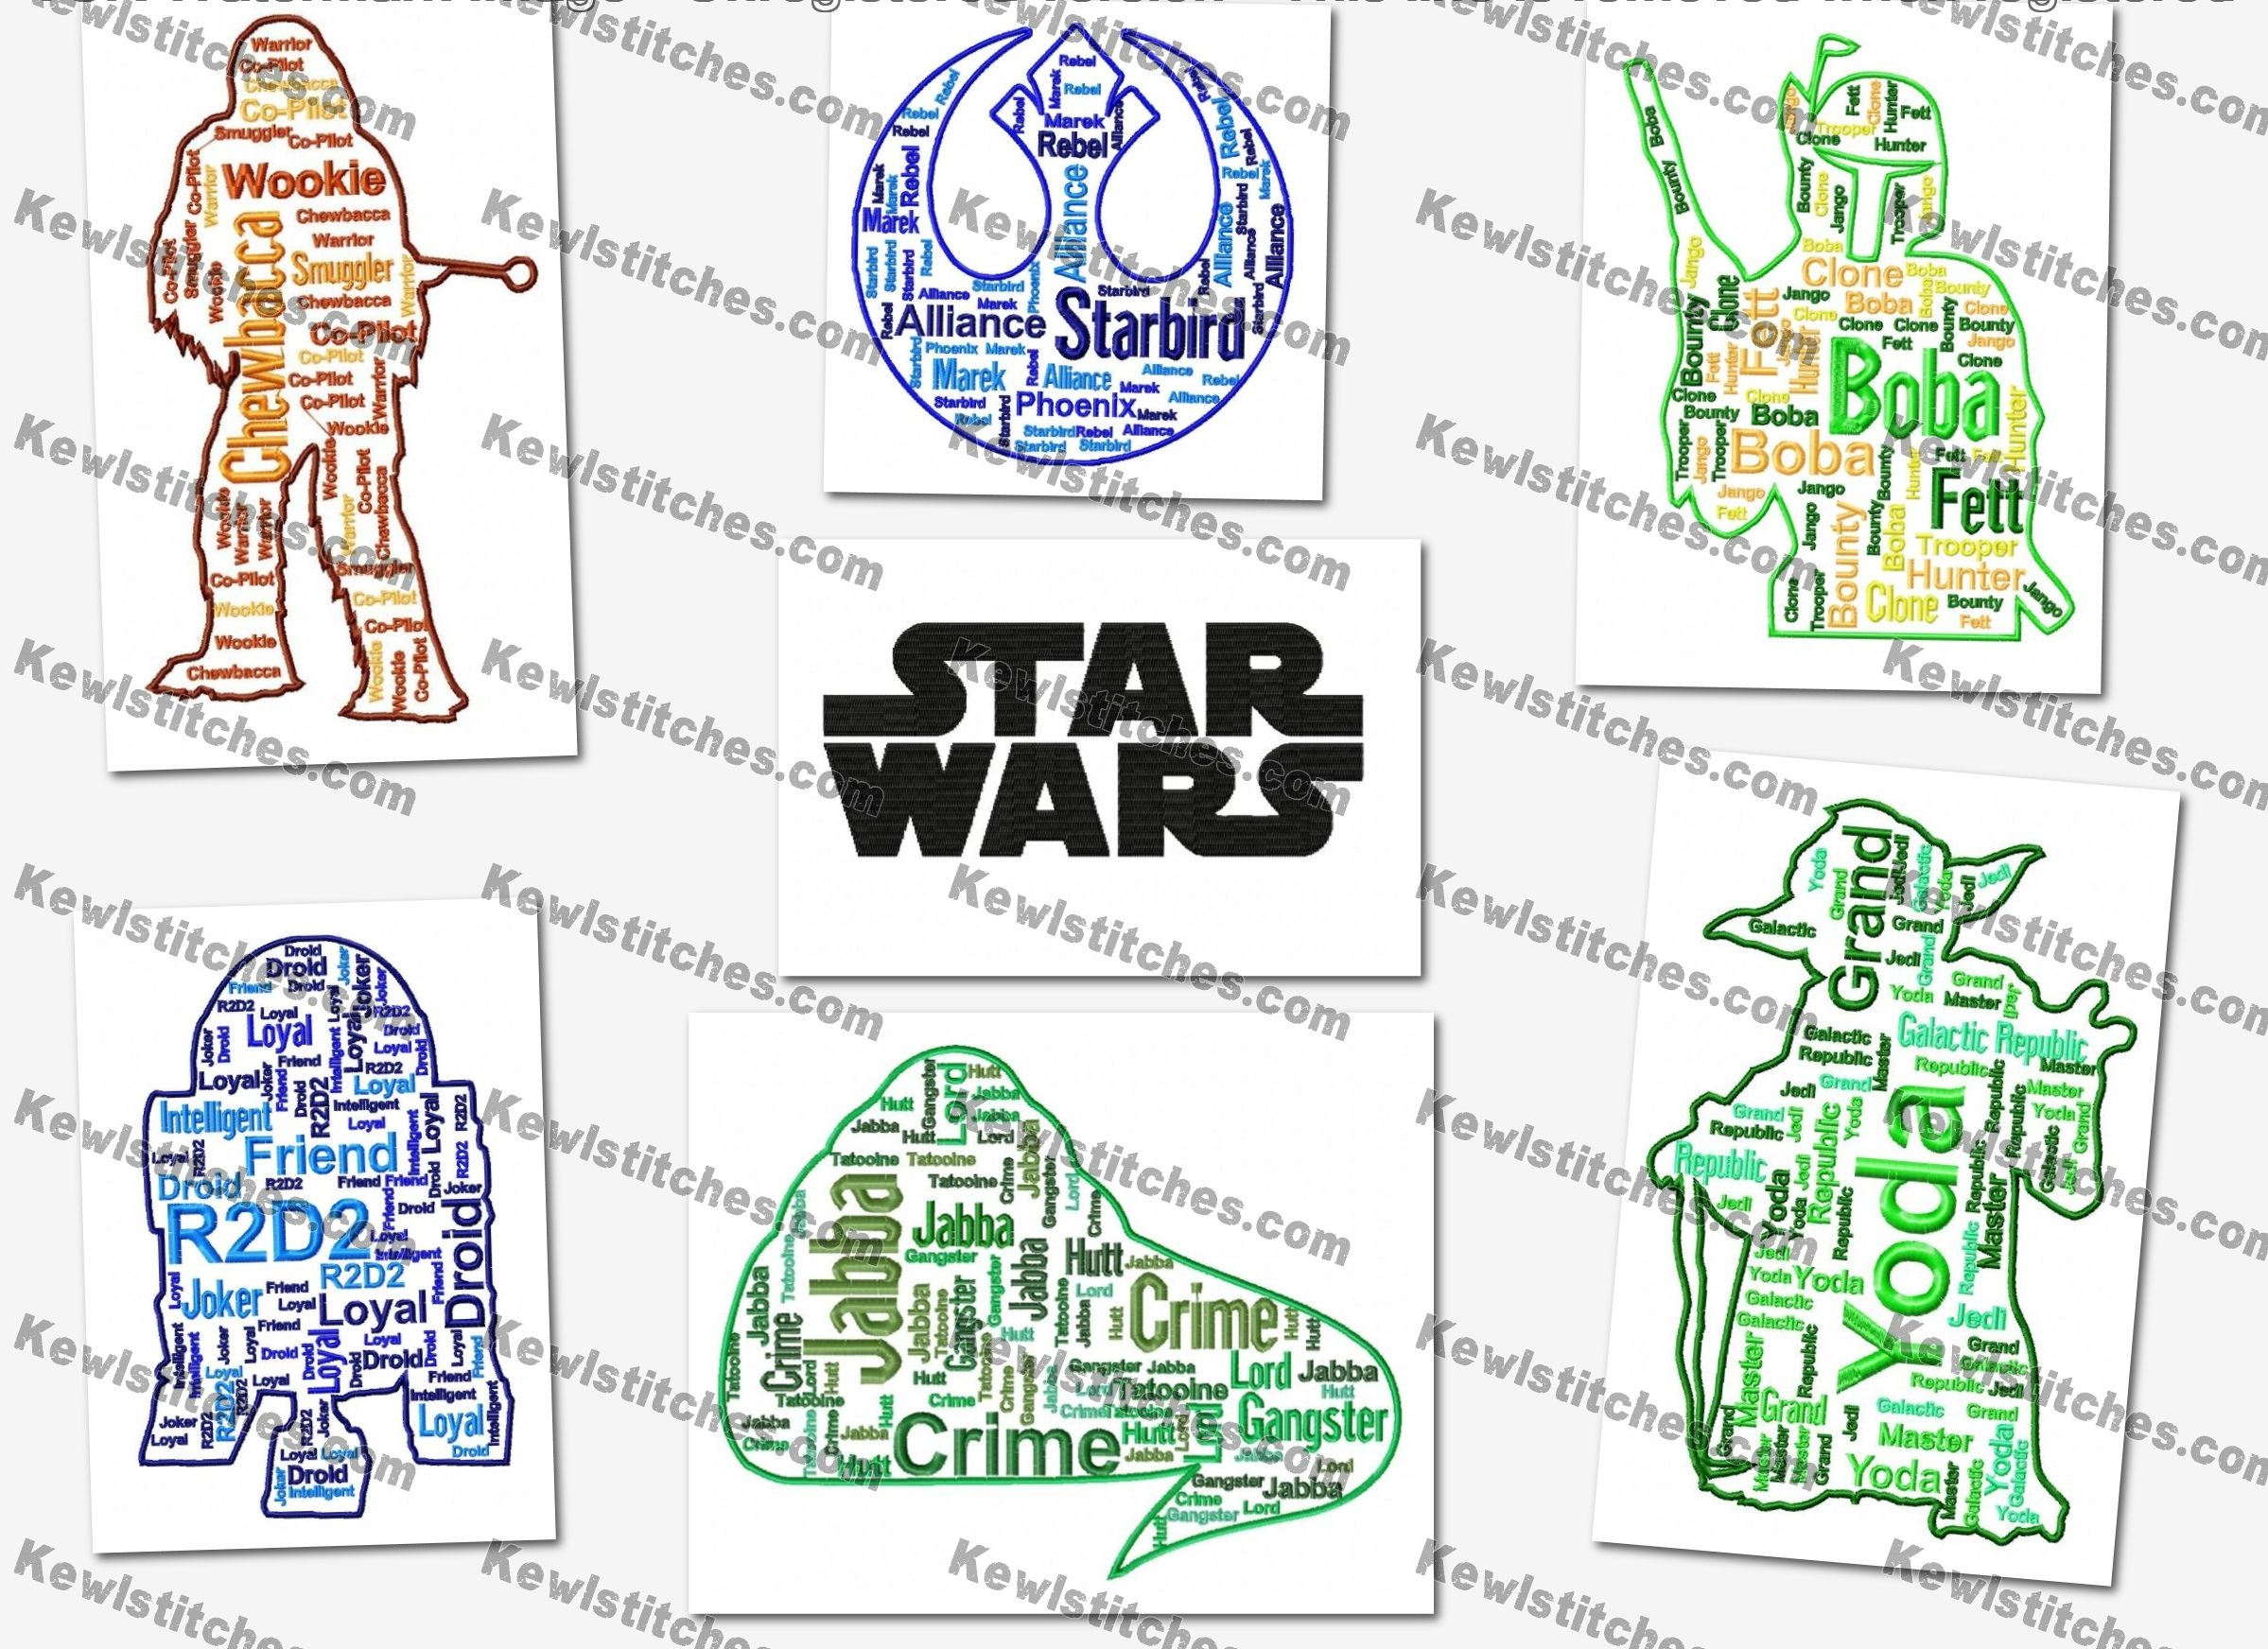 Star Wars Embroidery Pattern Star Wars Cloud Text Art Embroidery Designs Set 3 8x10 Hoops